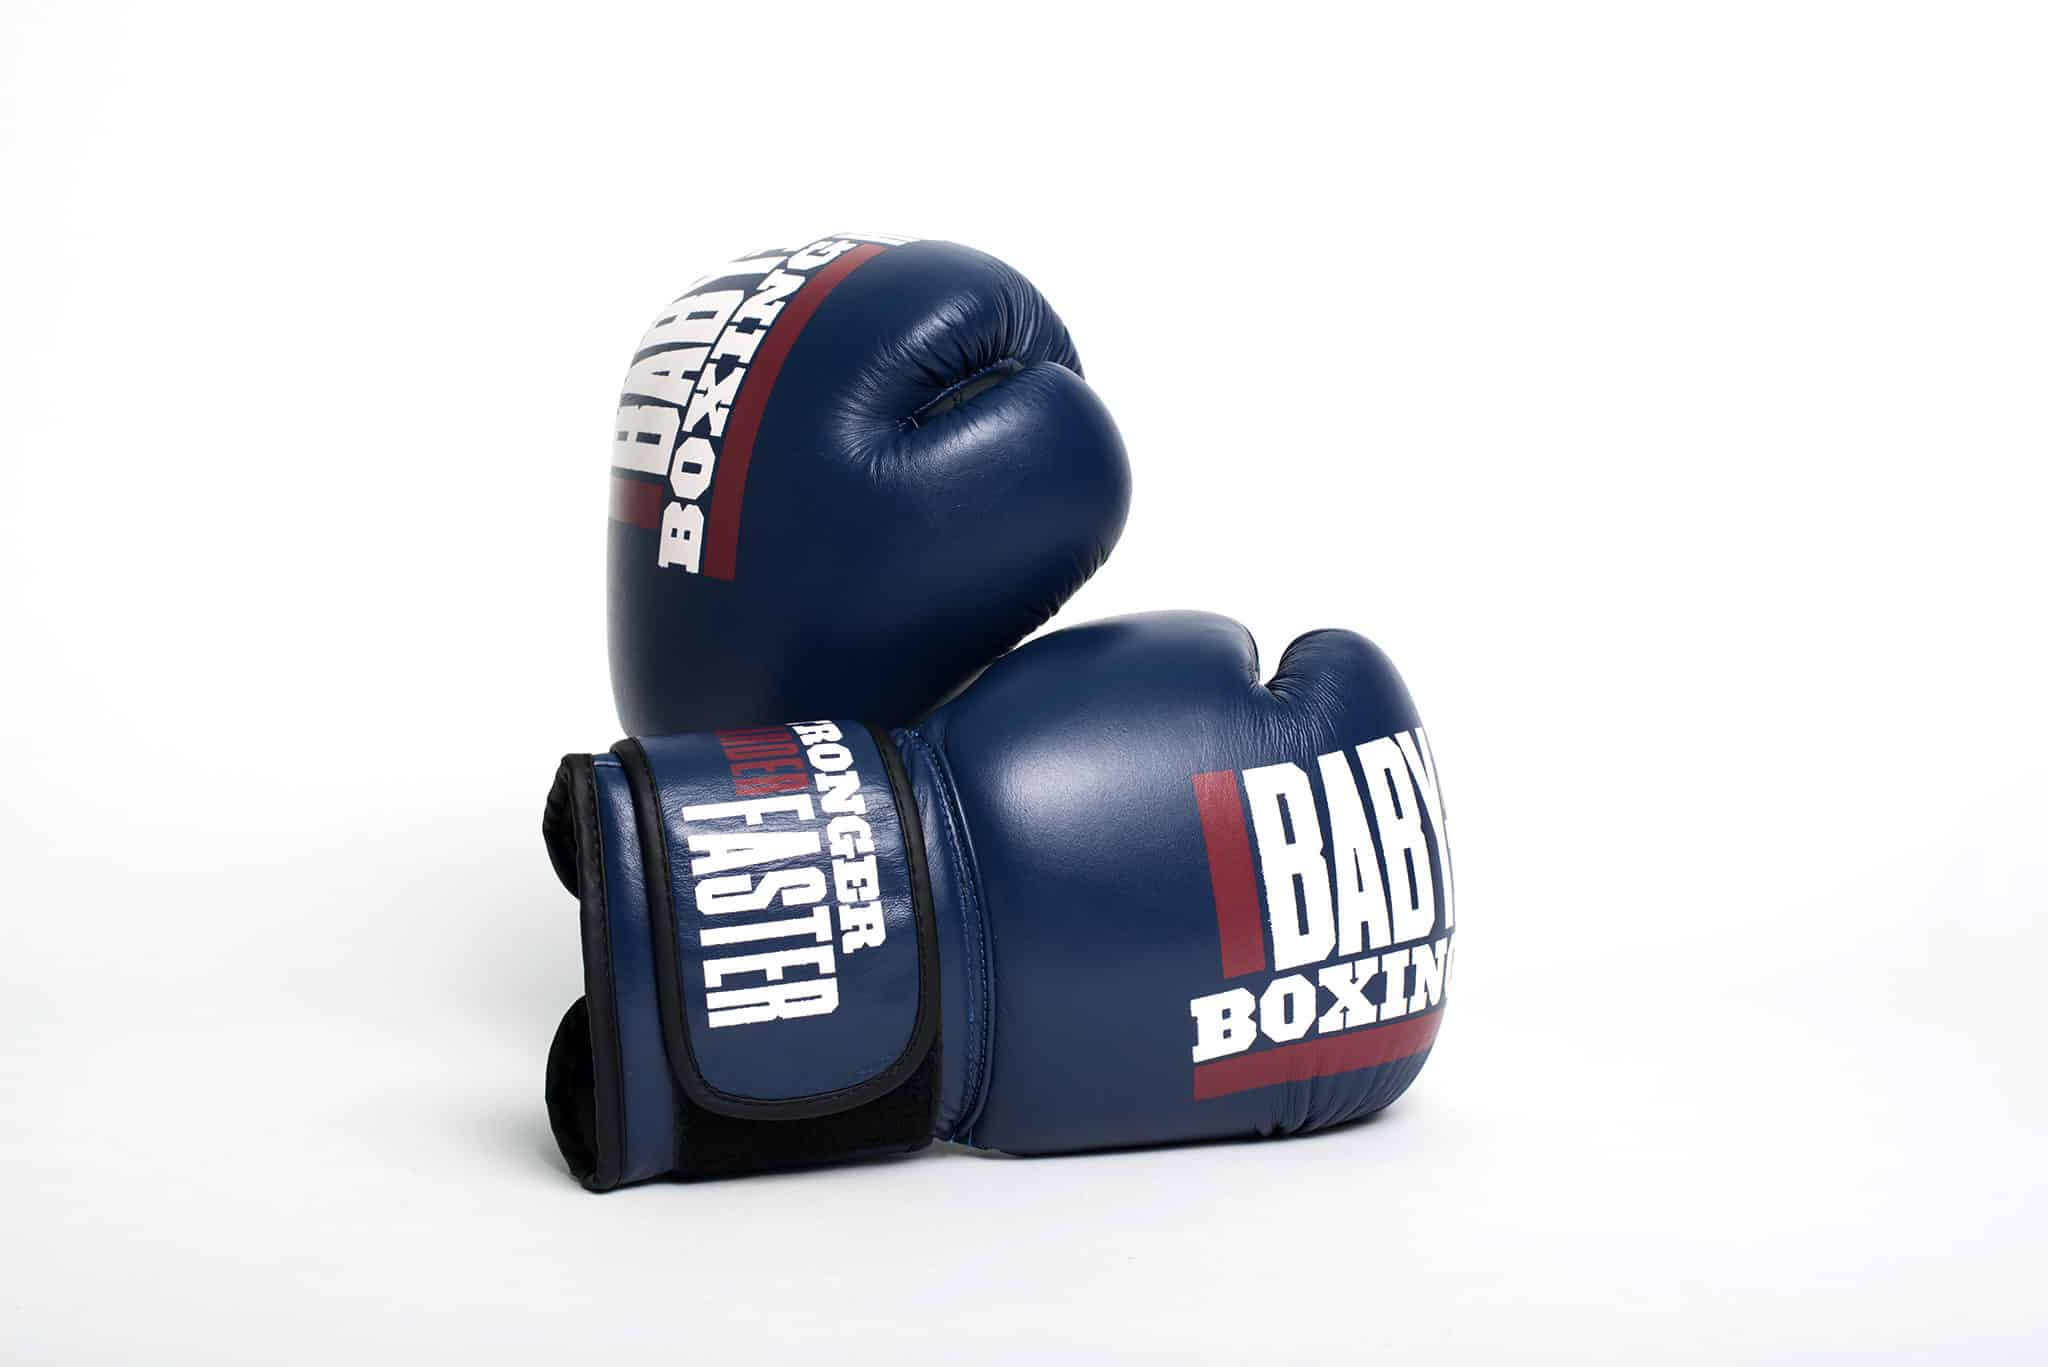 Branding, website, environmental graphics, merchandise, and signage for Baby Bull Boxing, Houston, Texas | Field of Study: A Design & Branding Consultancy